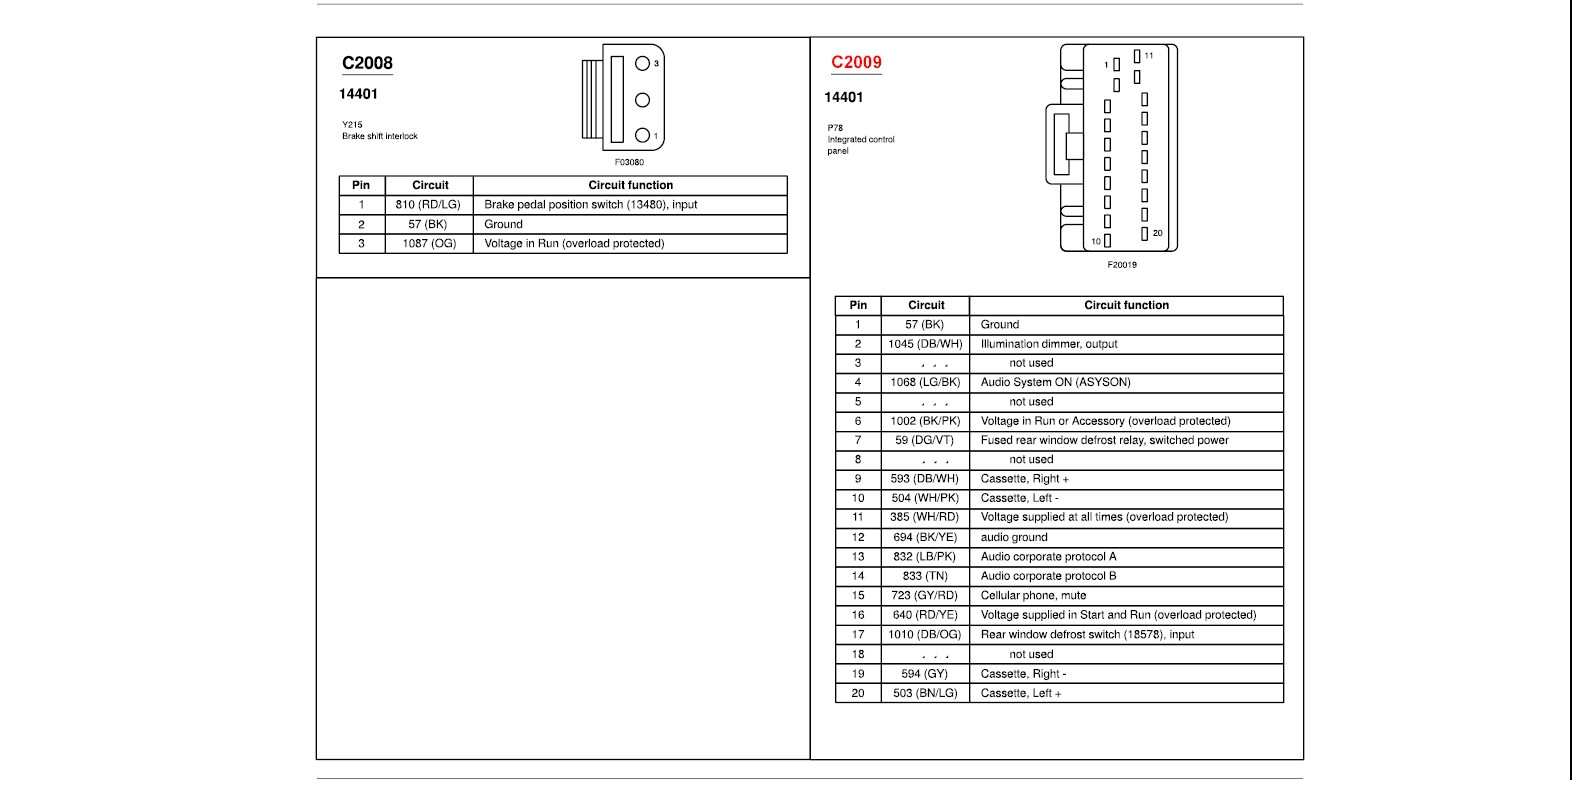 2001 Ford Explorer Sport Trac Radio Wiring Diagram